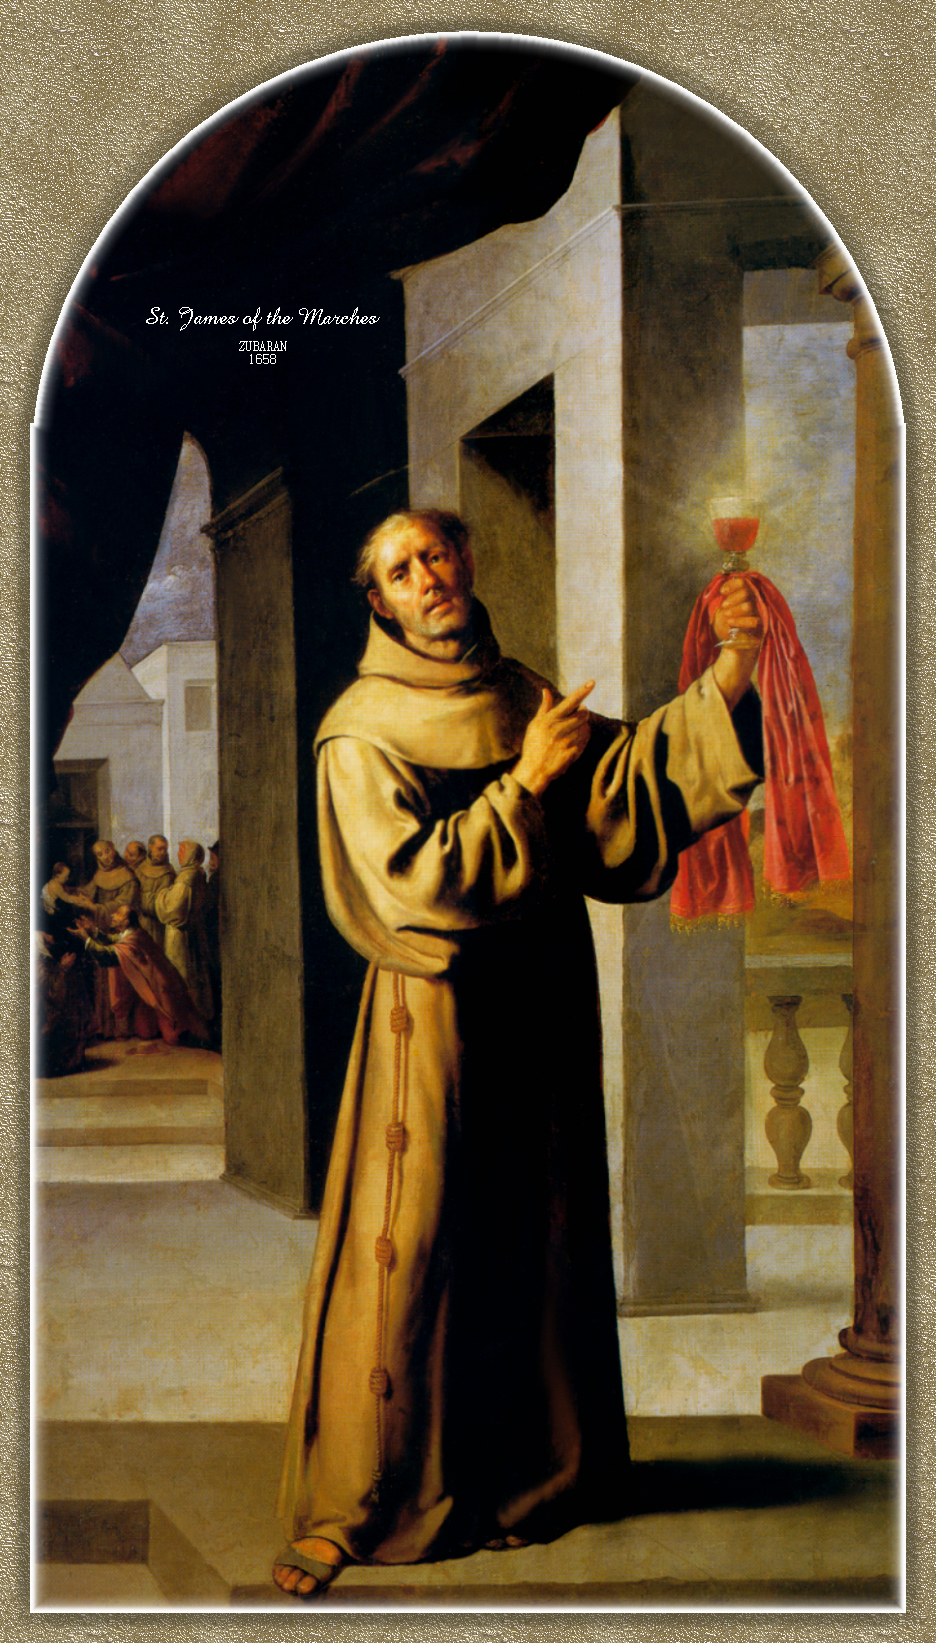 ST. JAMES of the Marches